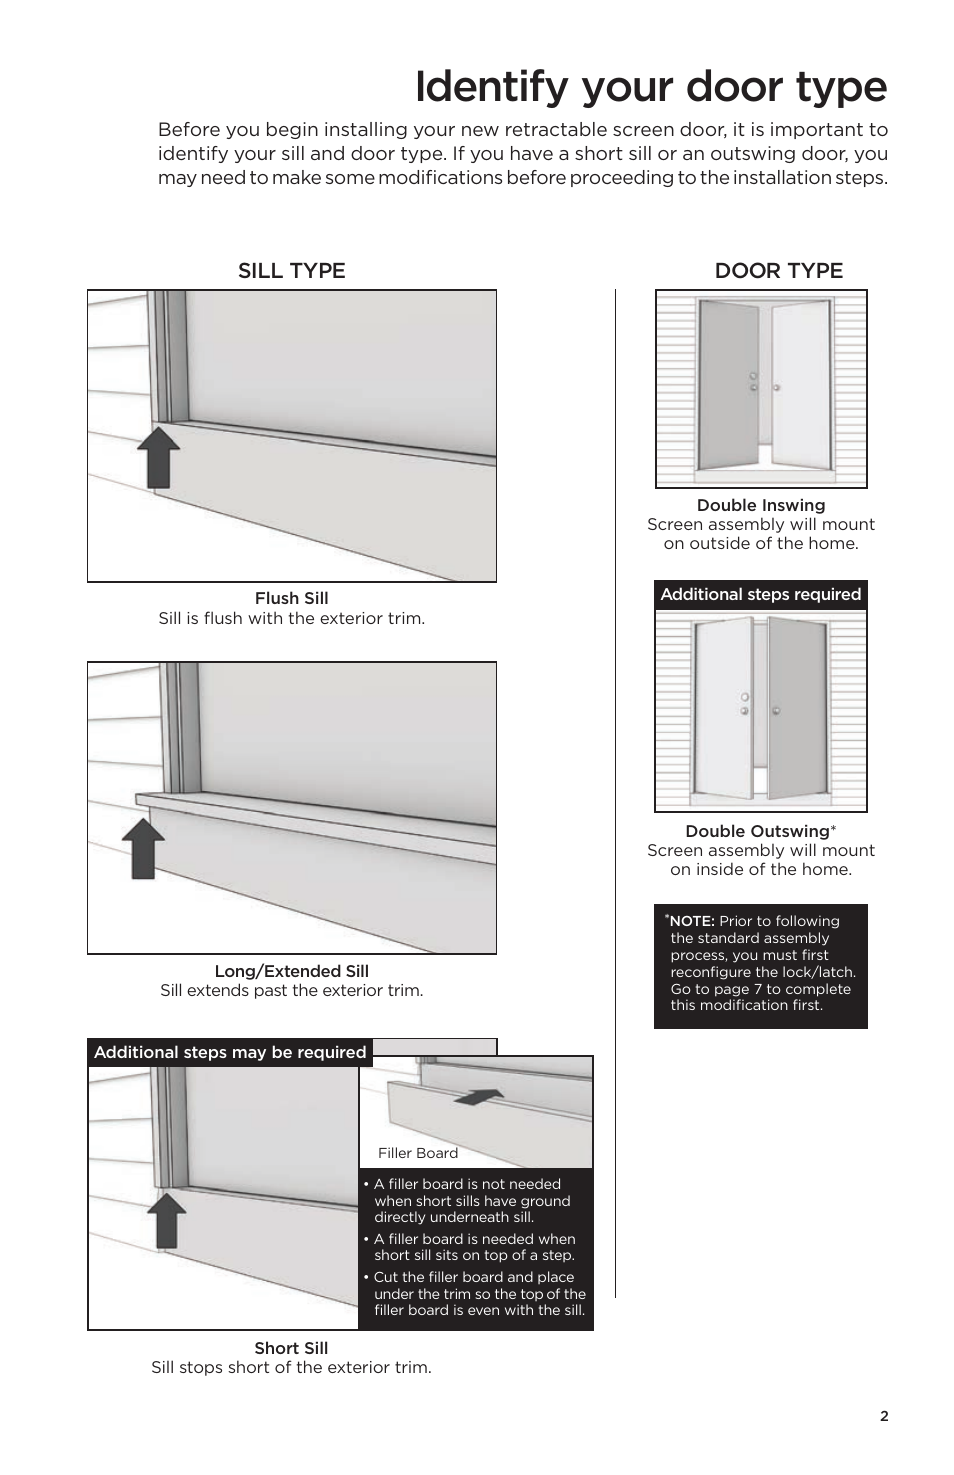 Odl Retractable Screen Door identify your door type, sill type door type | odl brisa